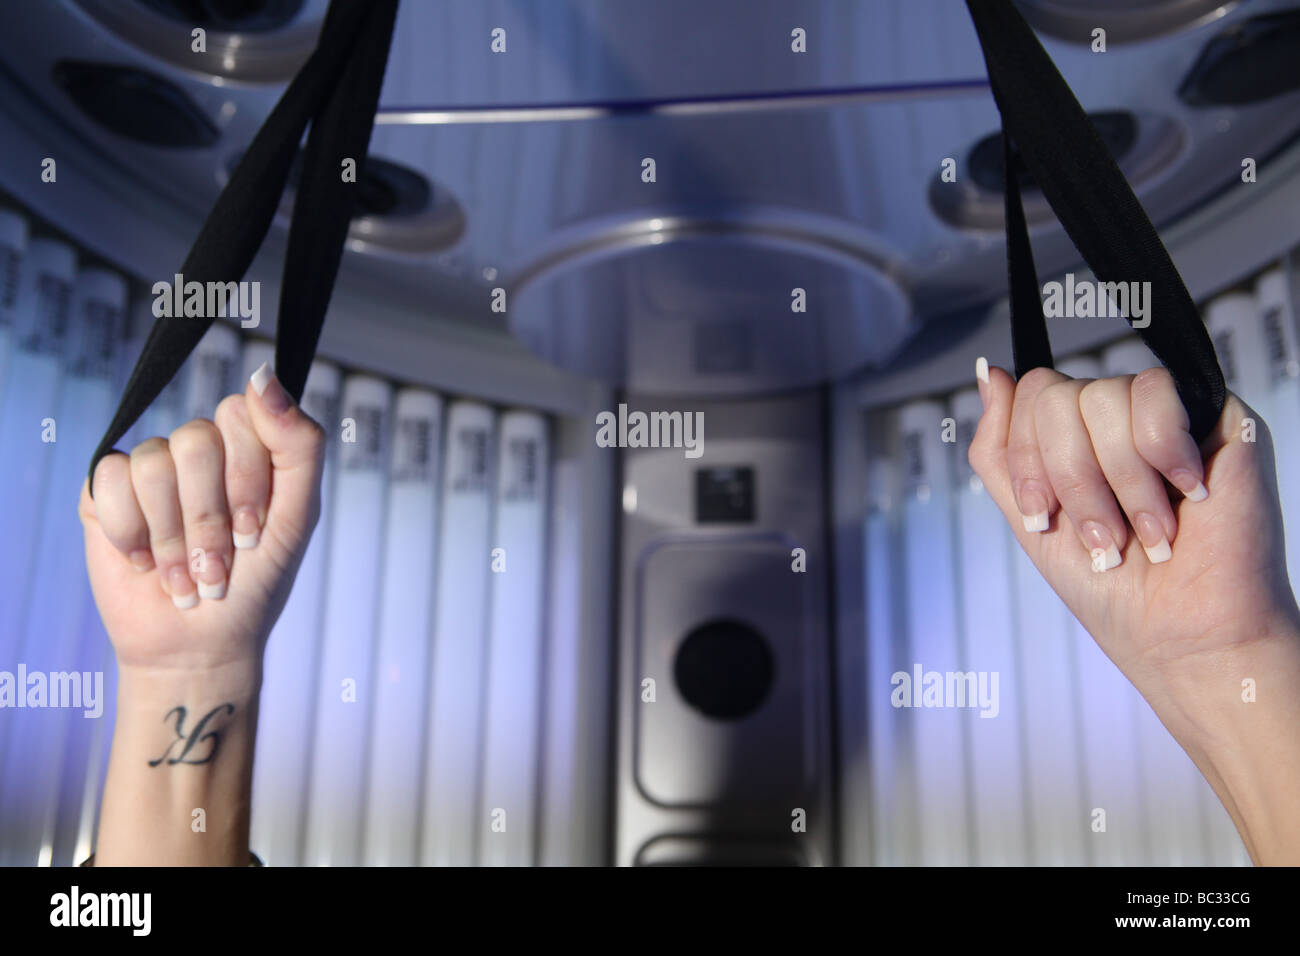 Tanning Booth Stock Photos & Tanning Booth Stock Images - Alamy